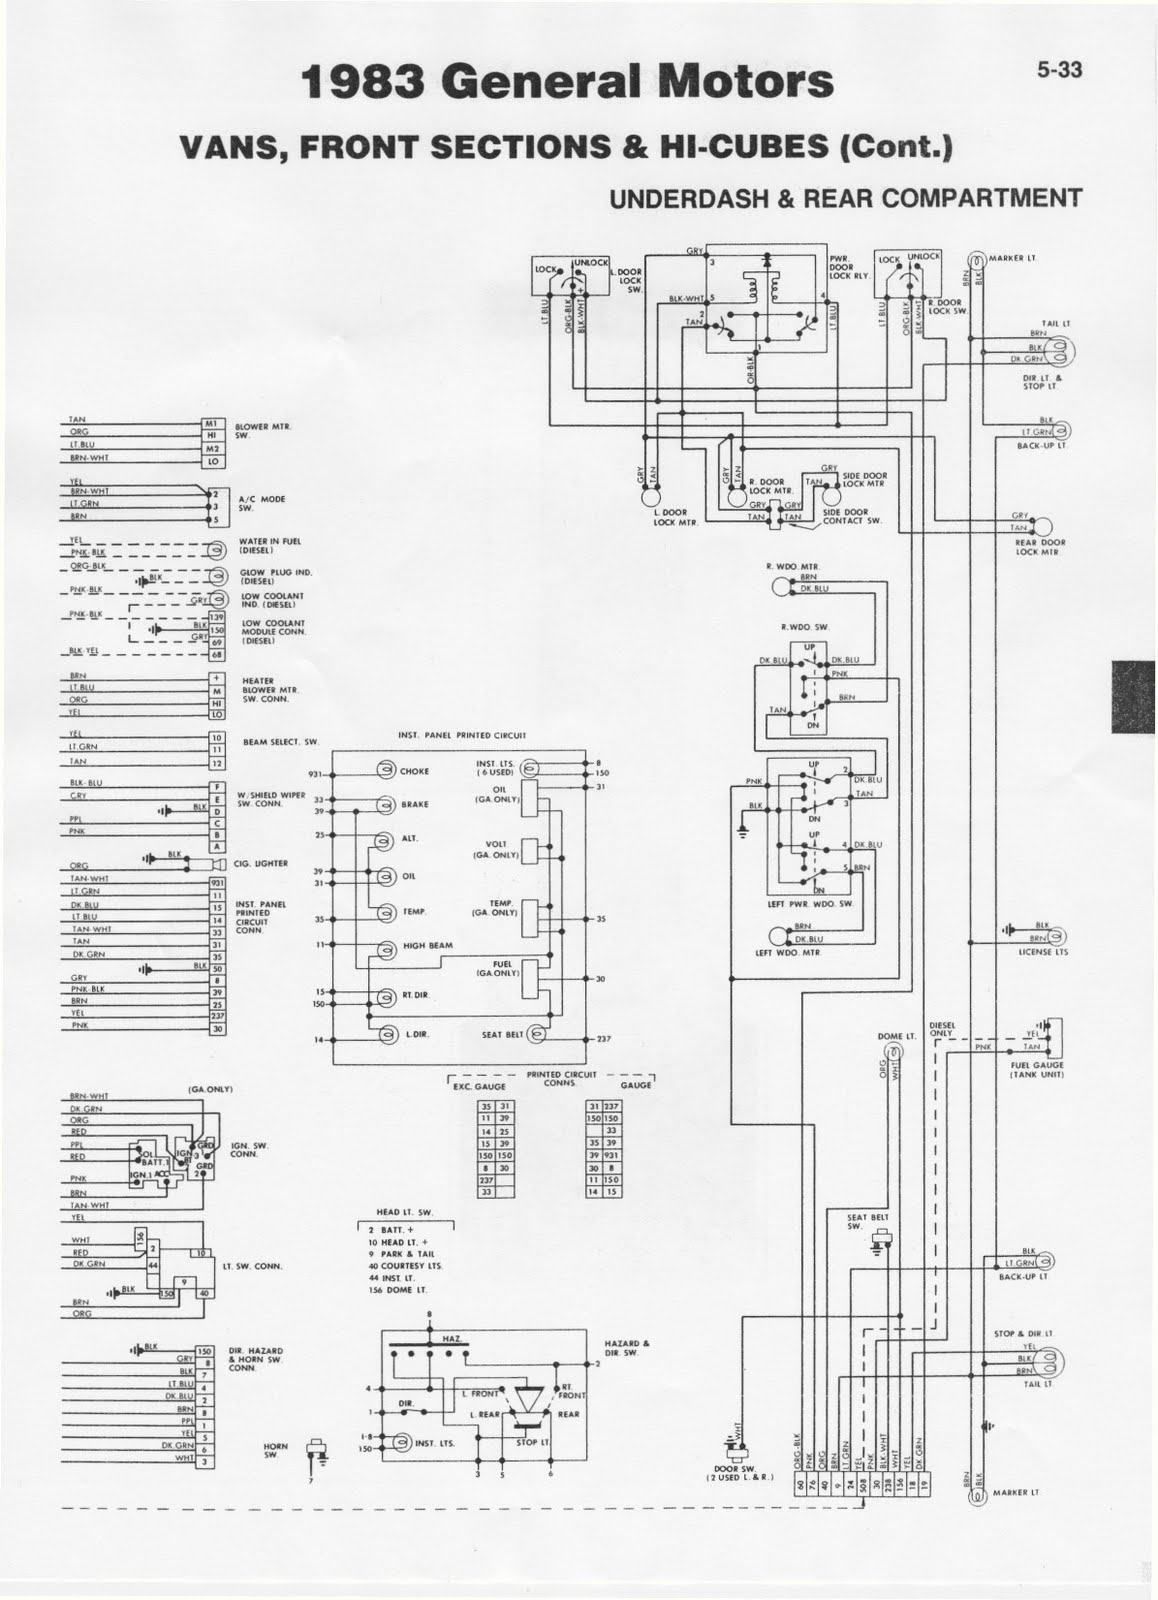 Wiring Diagram 1983 Champion, Wiring, Free Engine Image